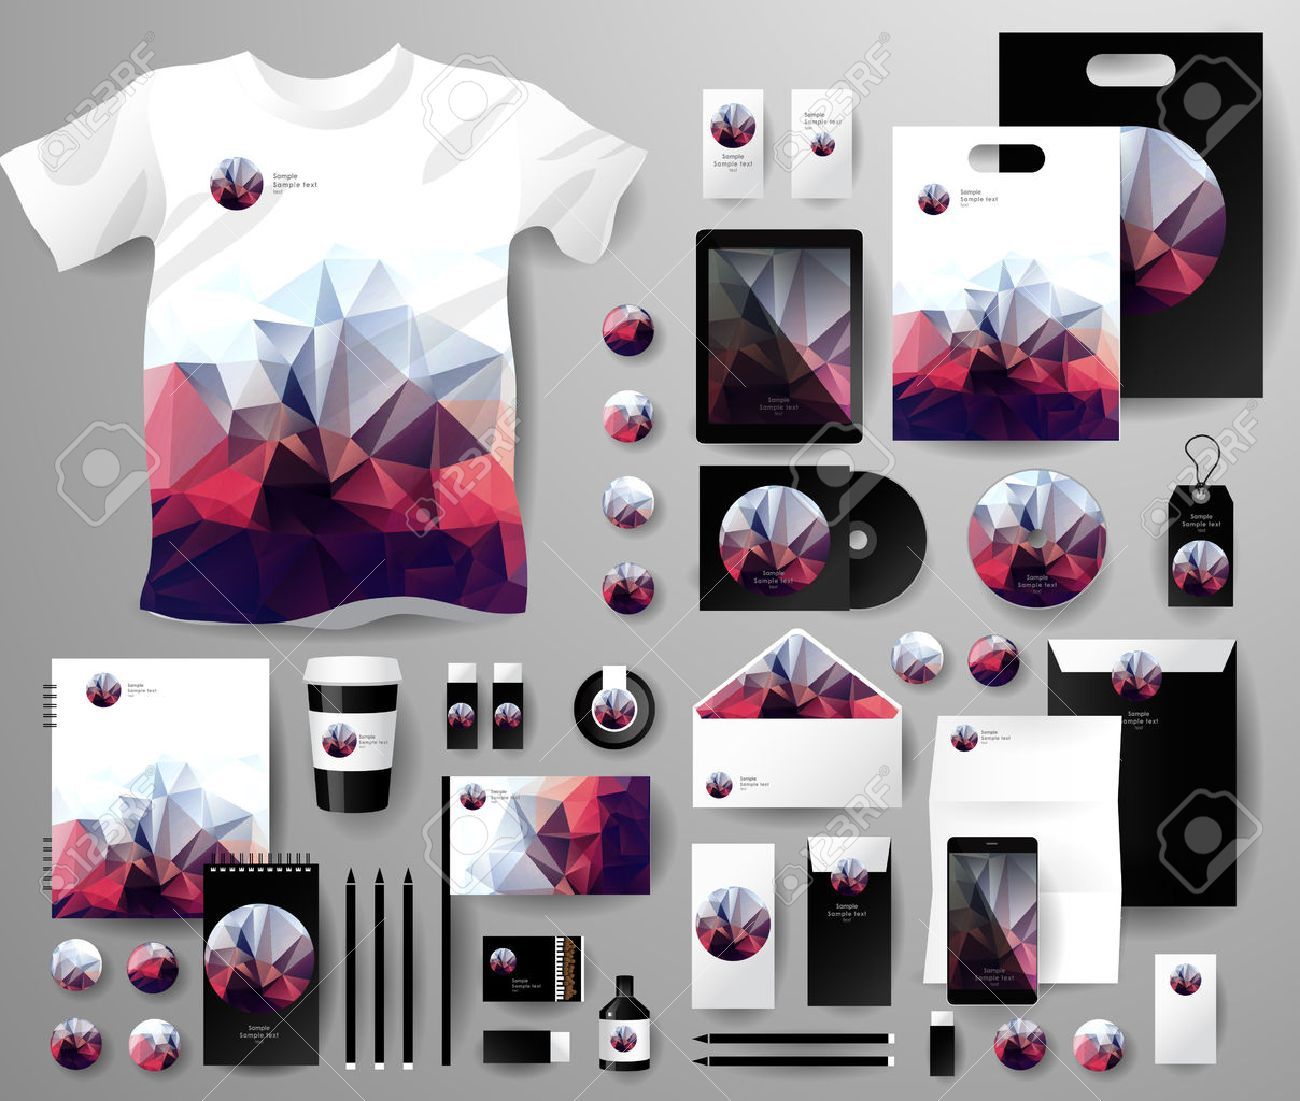 Abstract business set in polygonal style. Corporate identity templates, notebook, card, flag, T-shirt, disk, package, label, envelope, pen, Tablet PC, Mobile Phone, matches, ink, pencil, paper cup, forms, folders for documents, invitation card - 42982468